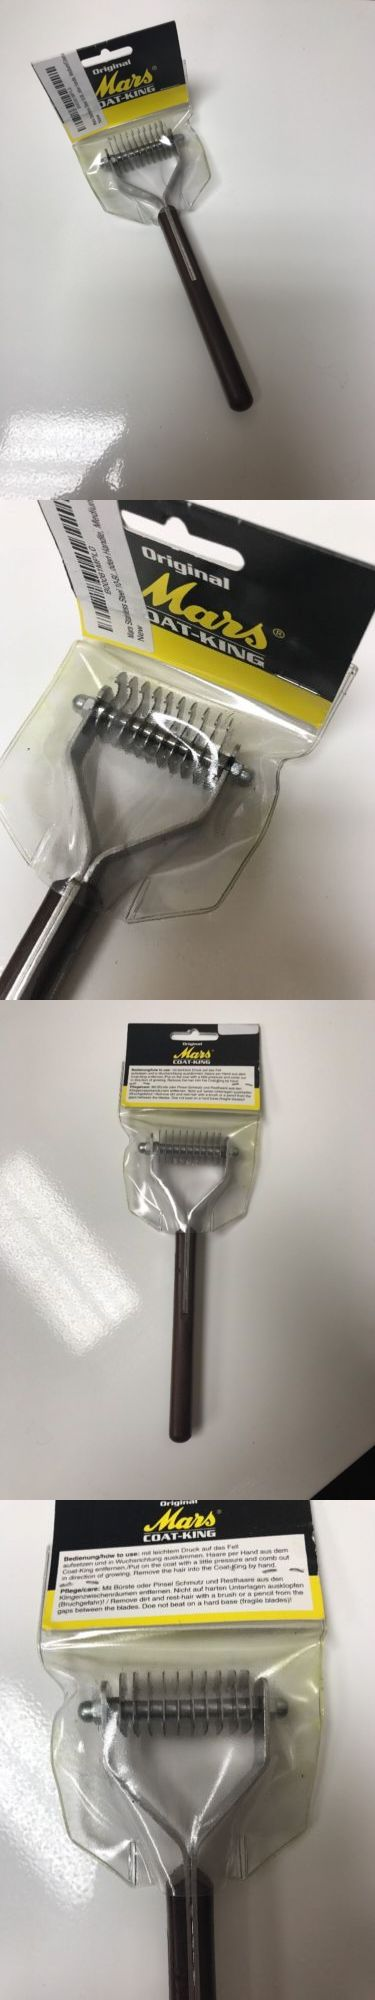 Brushes Combs and Rakes 46305: New Mars Stainless 10-Blade Coat King Pet Hair Stripper Grooming Rake Medium -> BUY IT NOW ONLY: $34.99 on eBay!